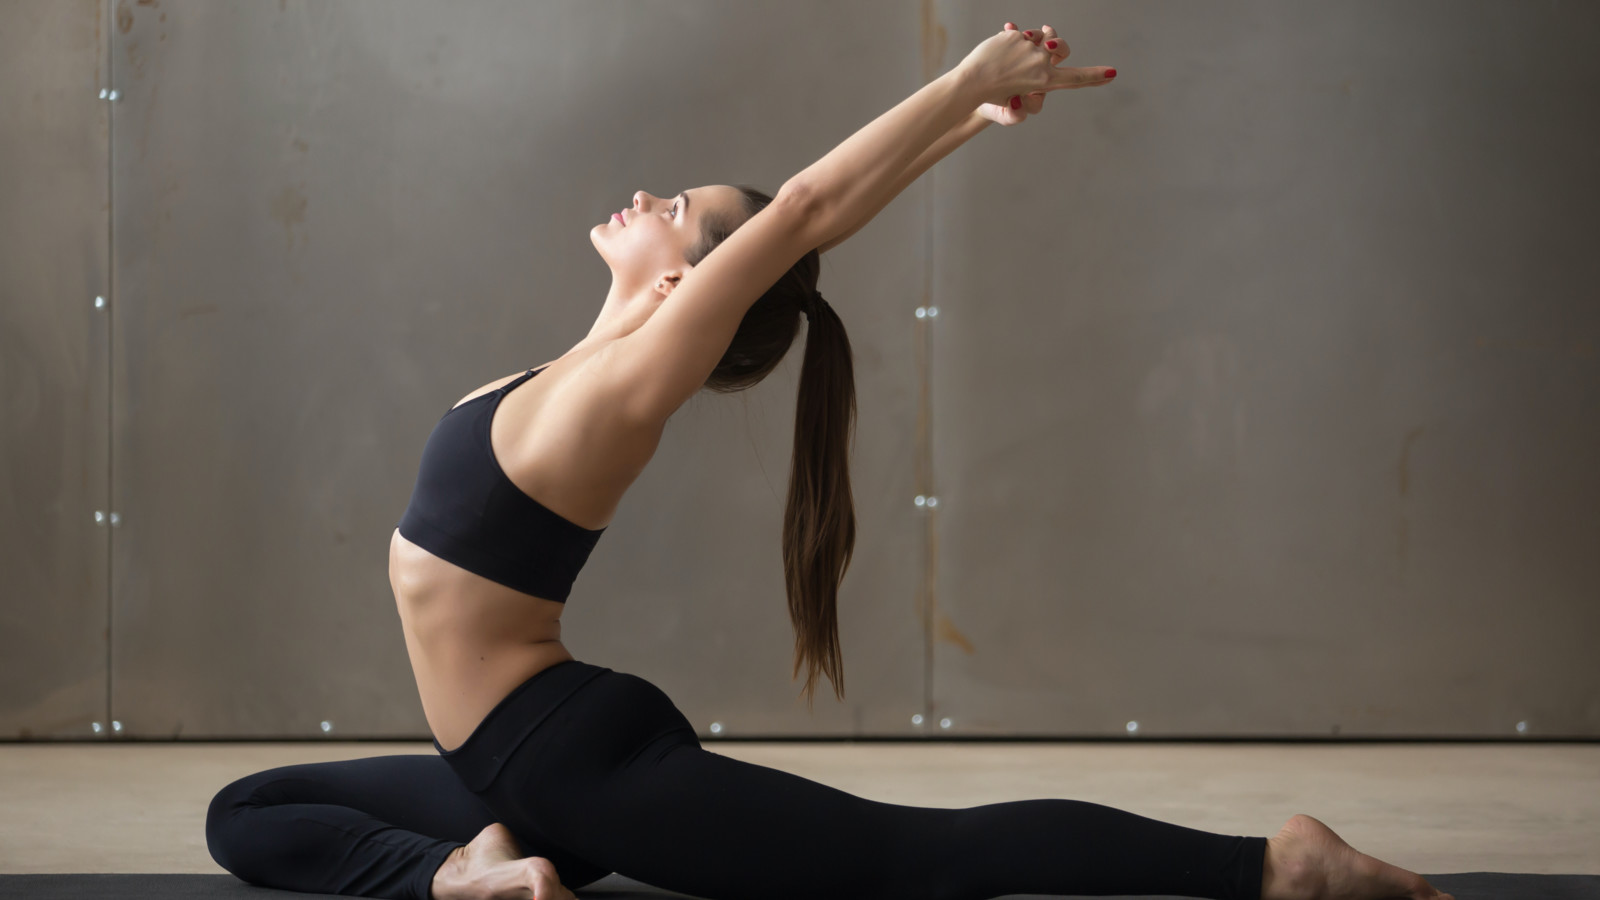 How to Do Pigeon Pose   STRETCHIT – Stretching Videos